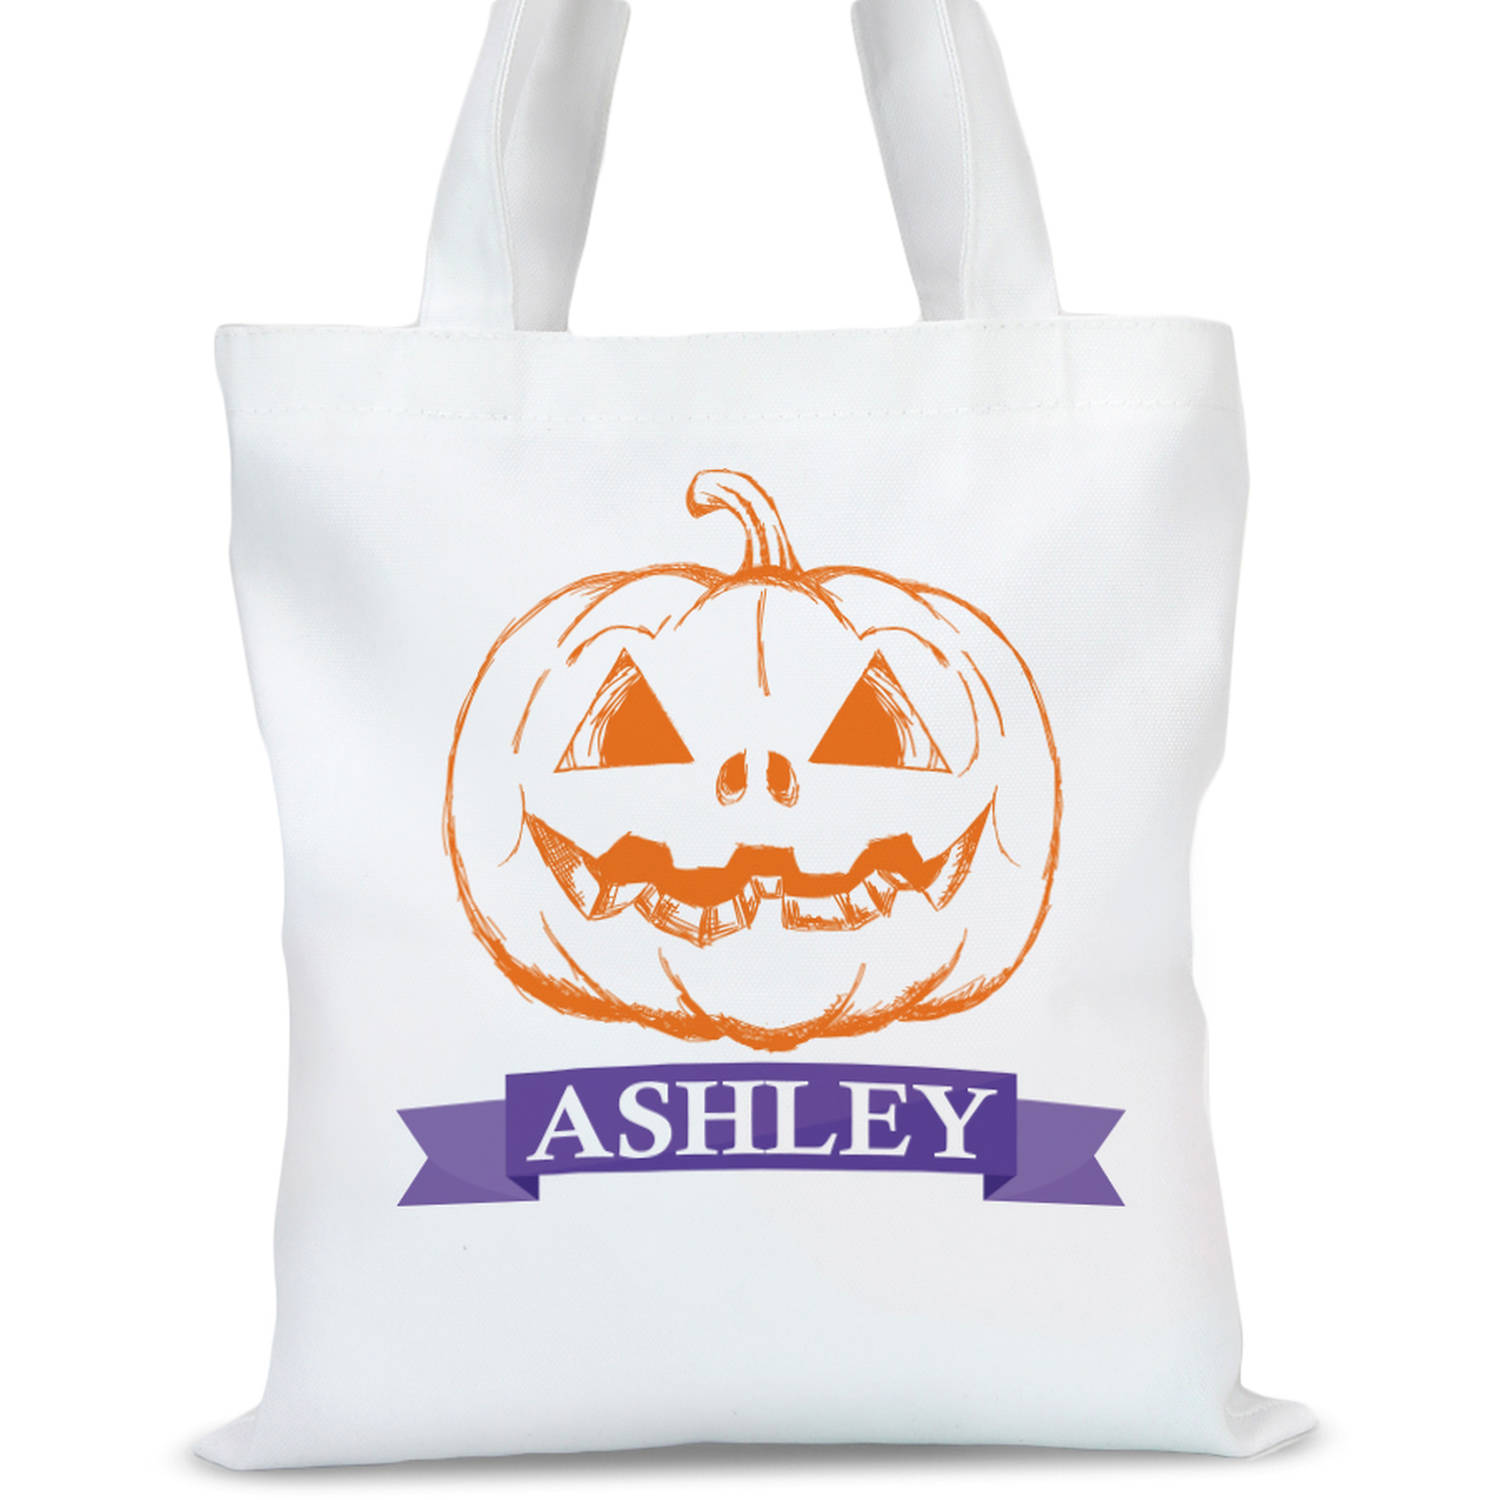 "Personalized Pumpkin Head Tote Bag, Sizes 11"" x 11.75"" and 15"" x 16.25"""